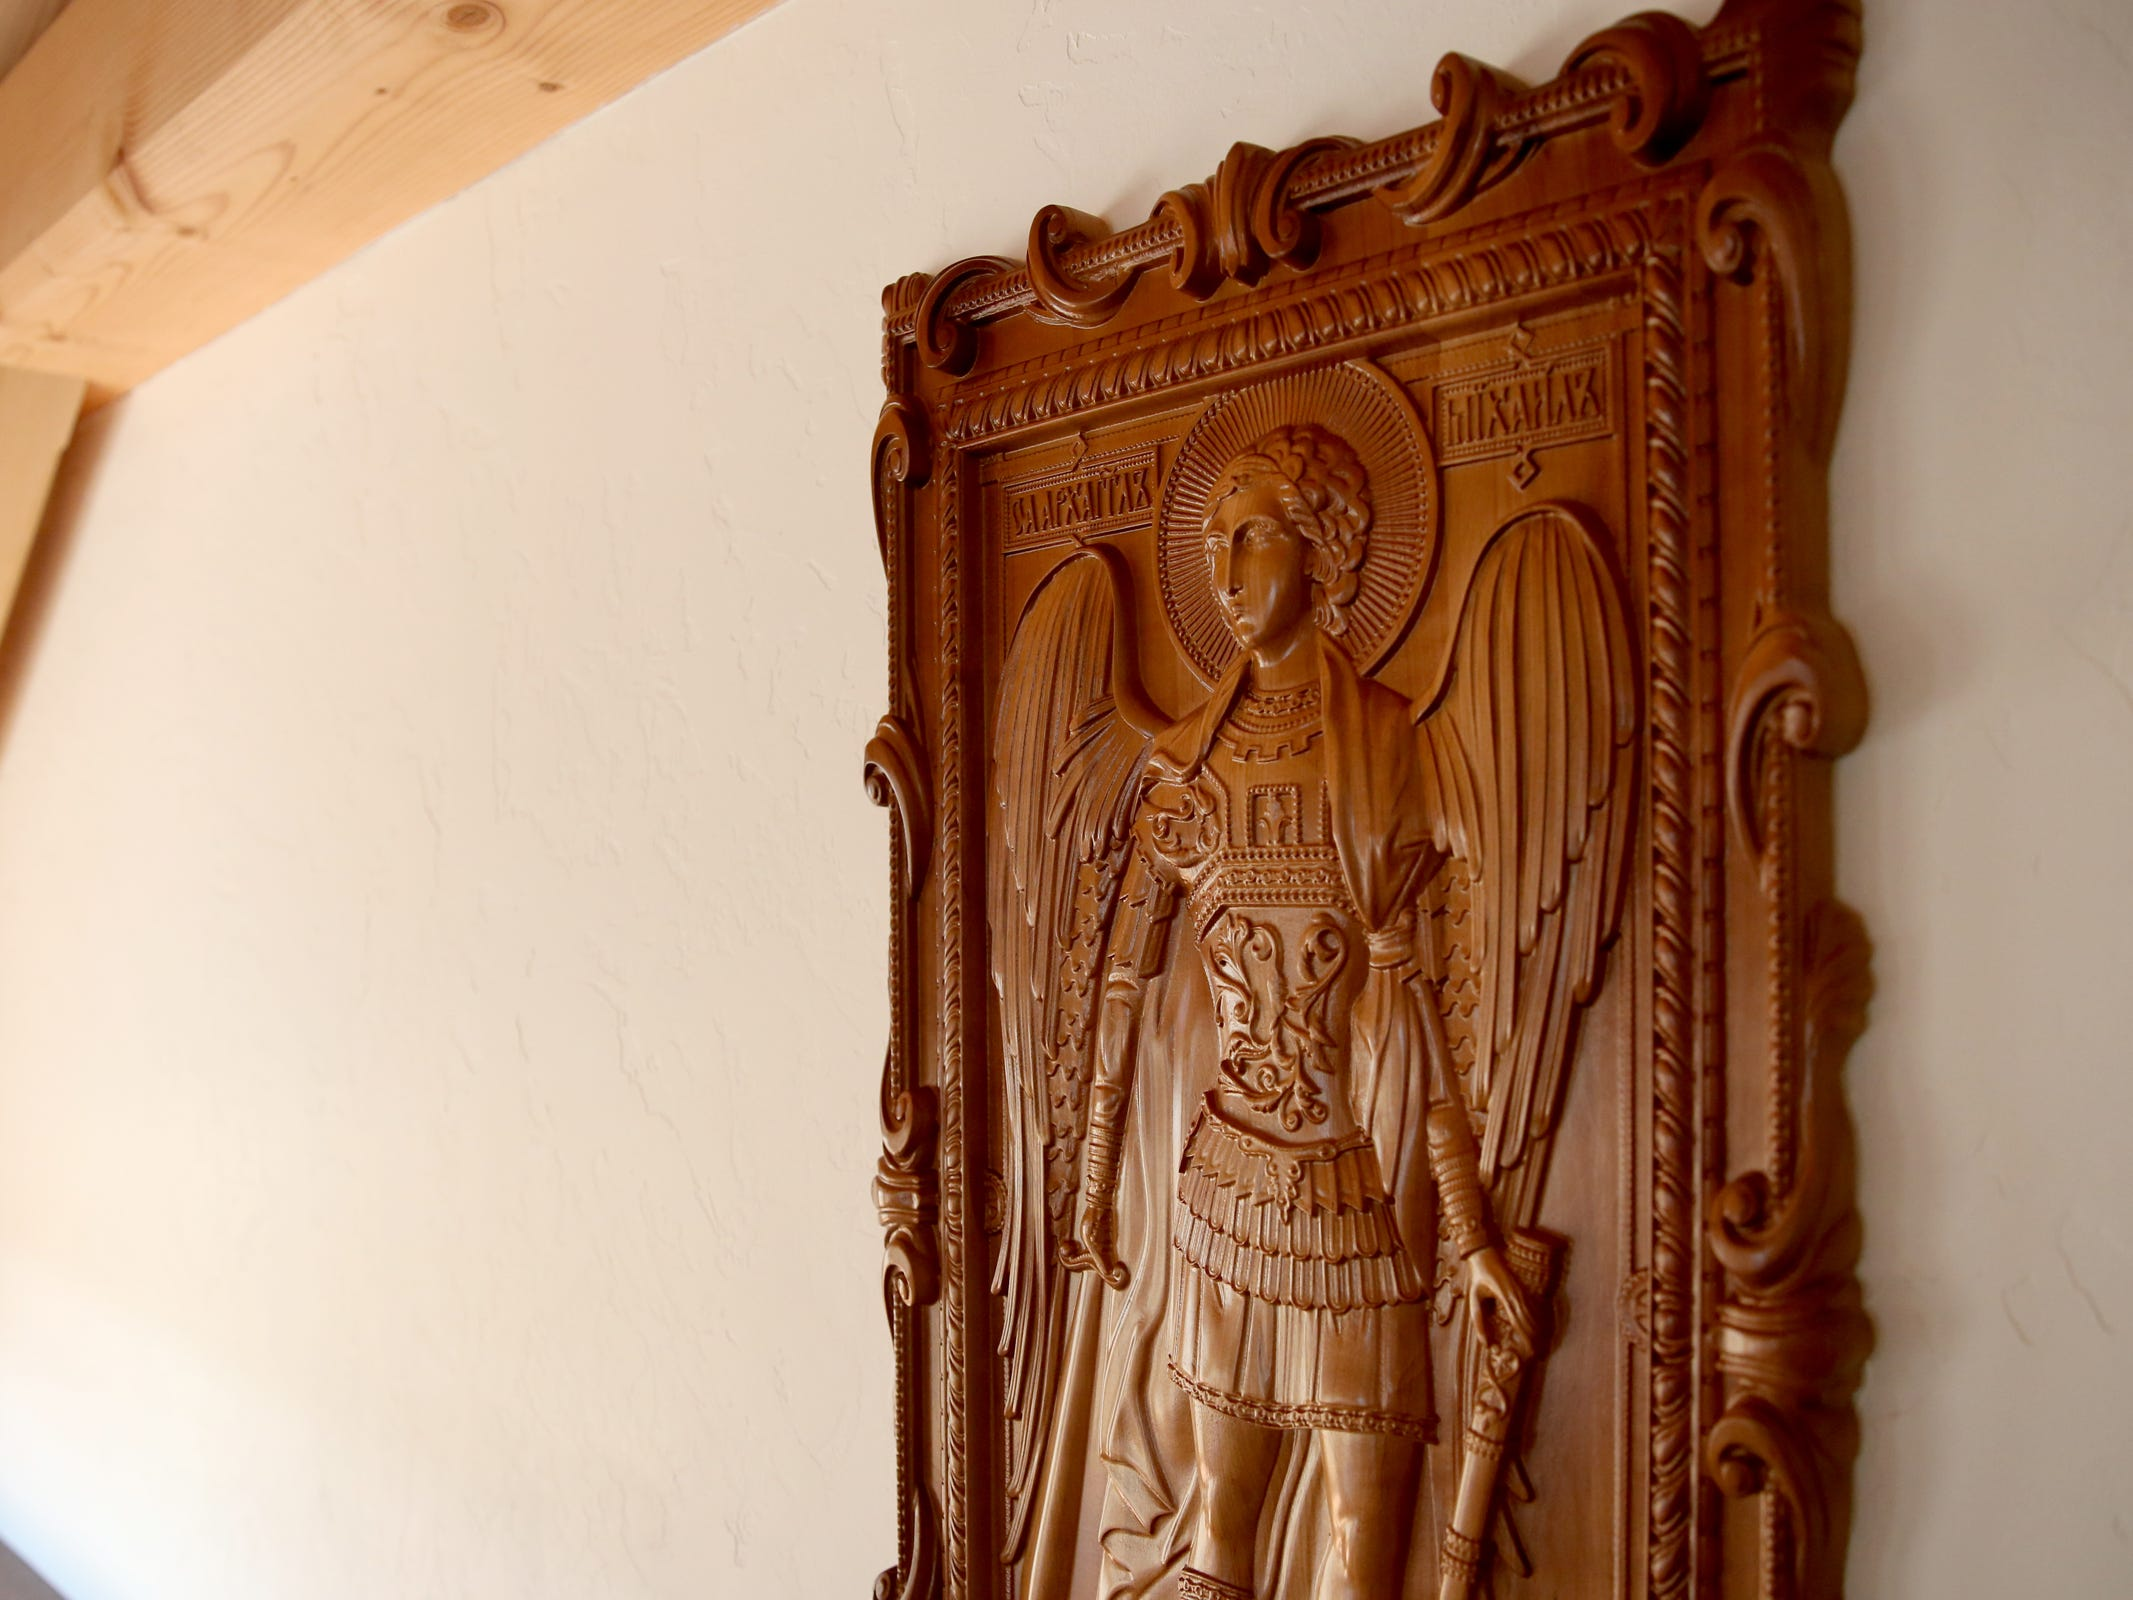 A carving of St. Michael hangs on the taproom wall at the Benedictine Brewery in Mt. Angel on Wednesday, Sep. 5, 2018. The brewery, operated by the monks of Mount Angel Abbey, opens September 22.